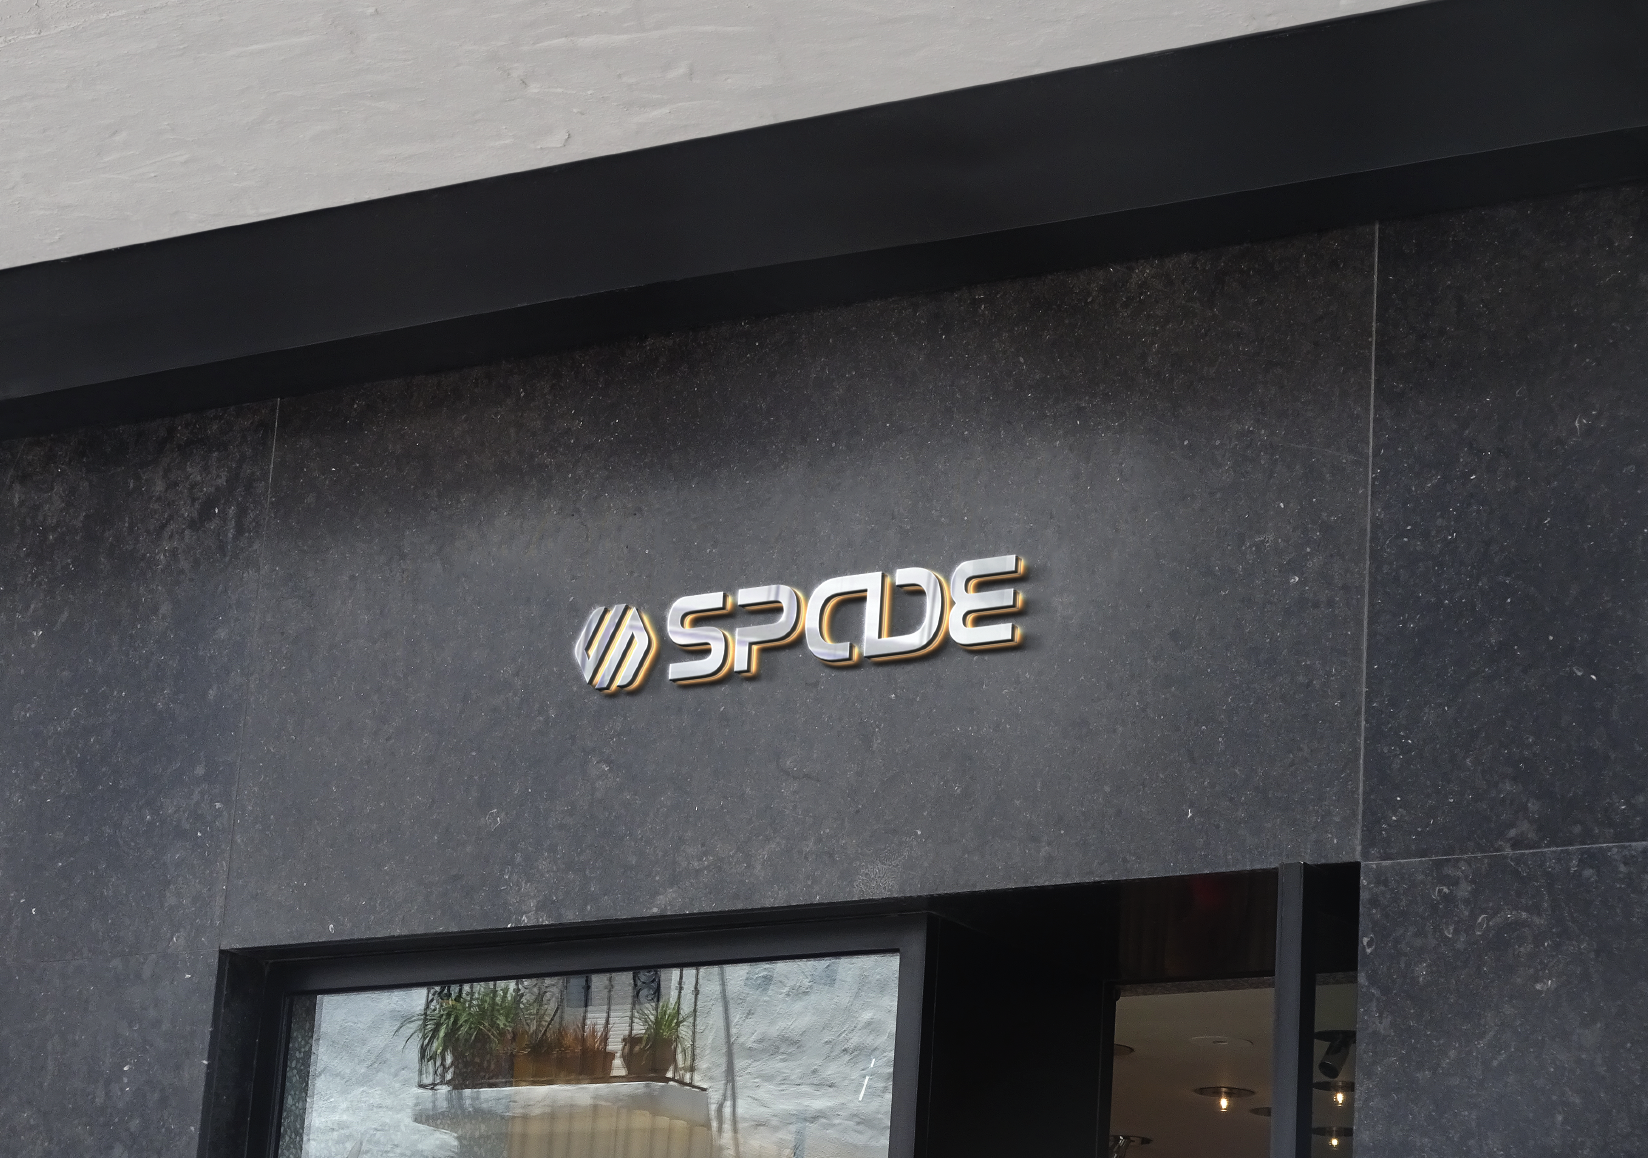 The Spade logo on a concrete wall.